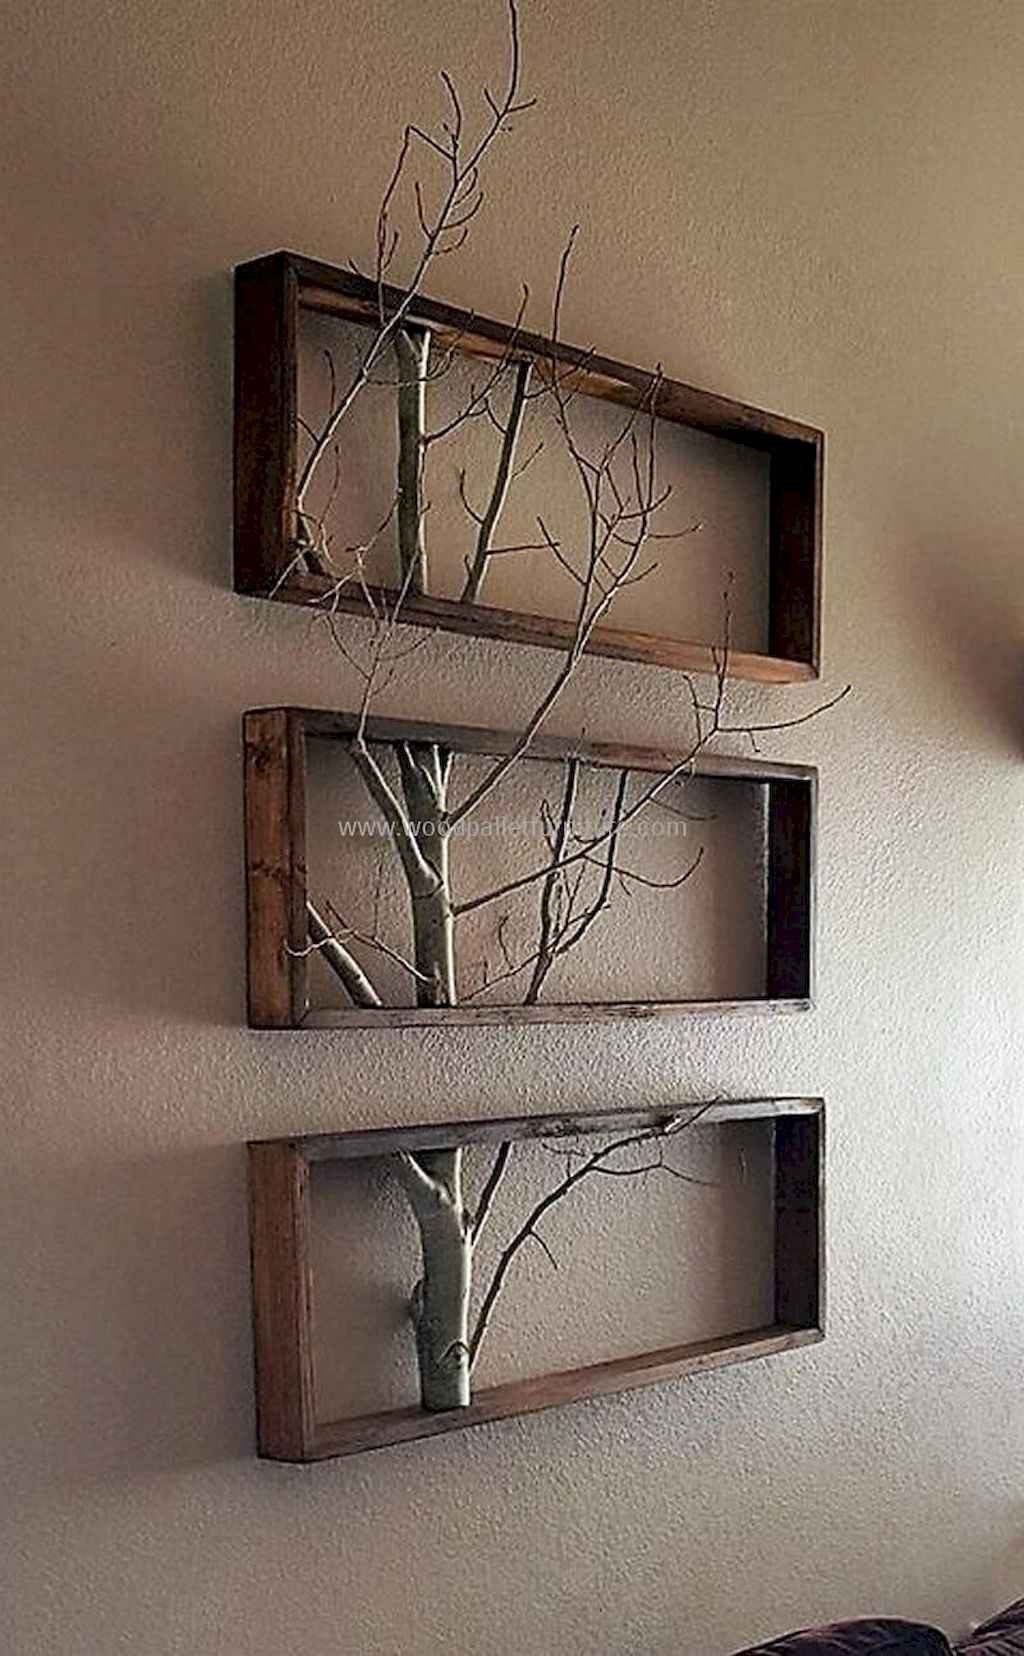 40 Easy Diy Wood Projects Ideas For Beginner 4 Roomadness Com